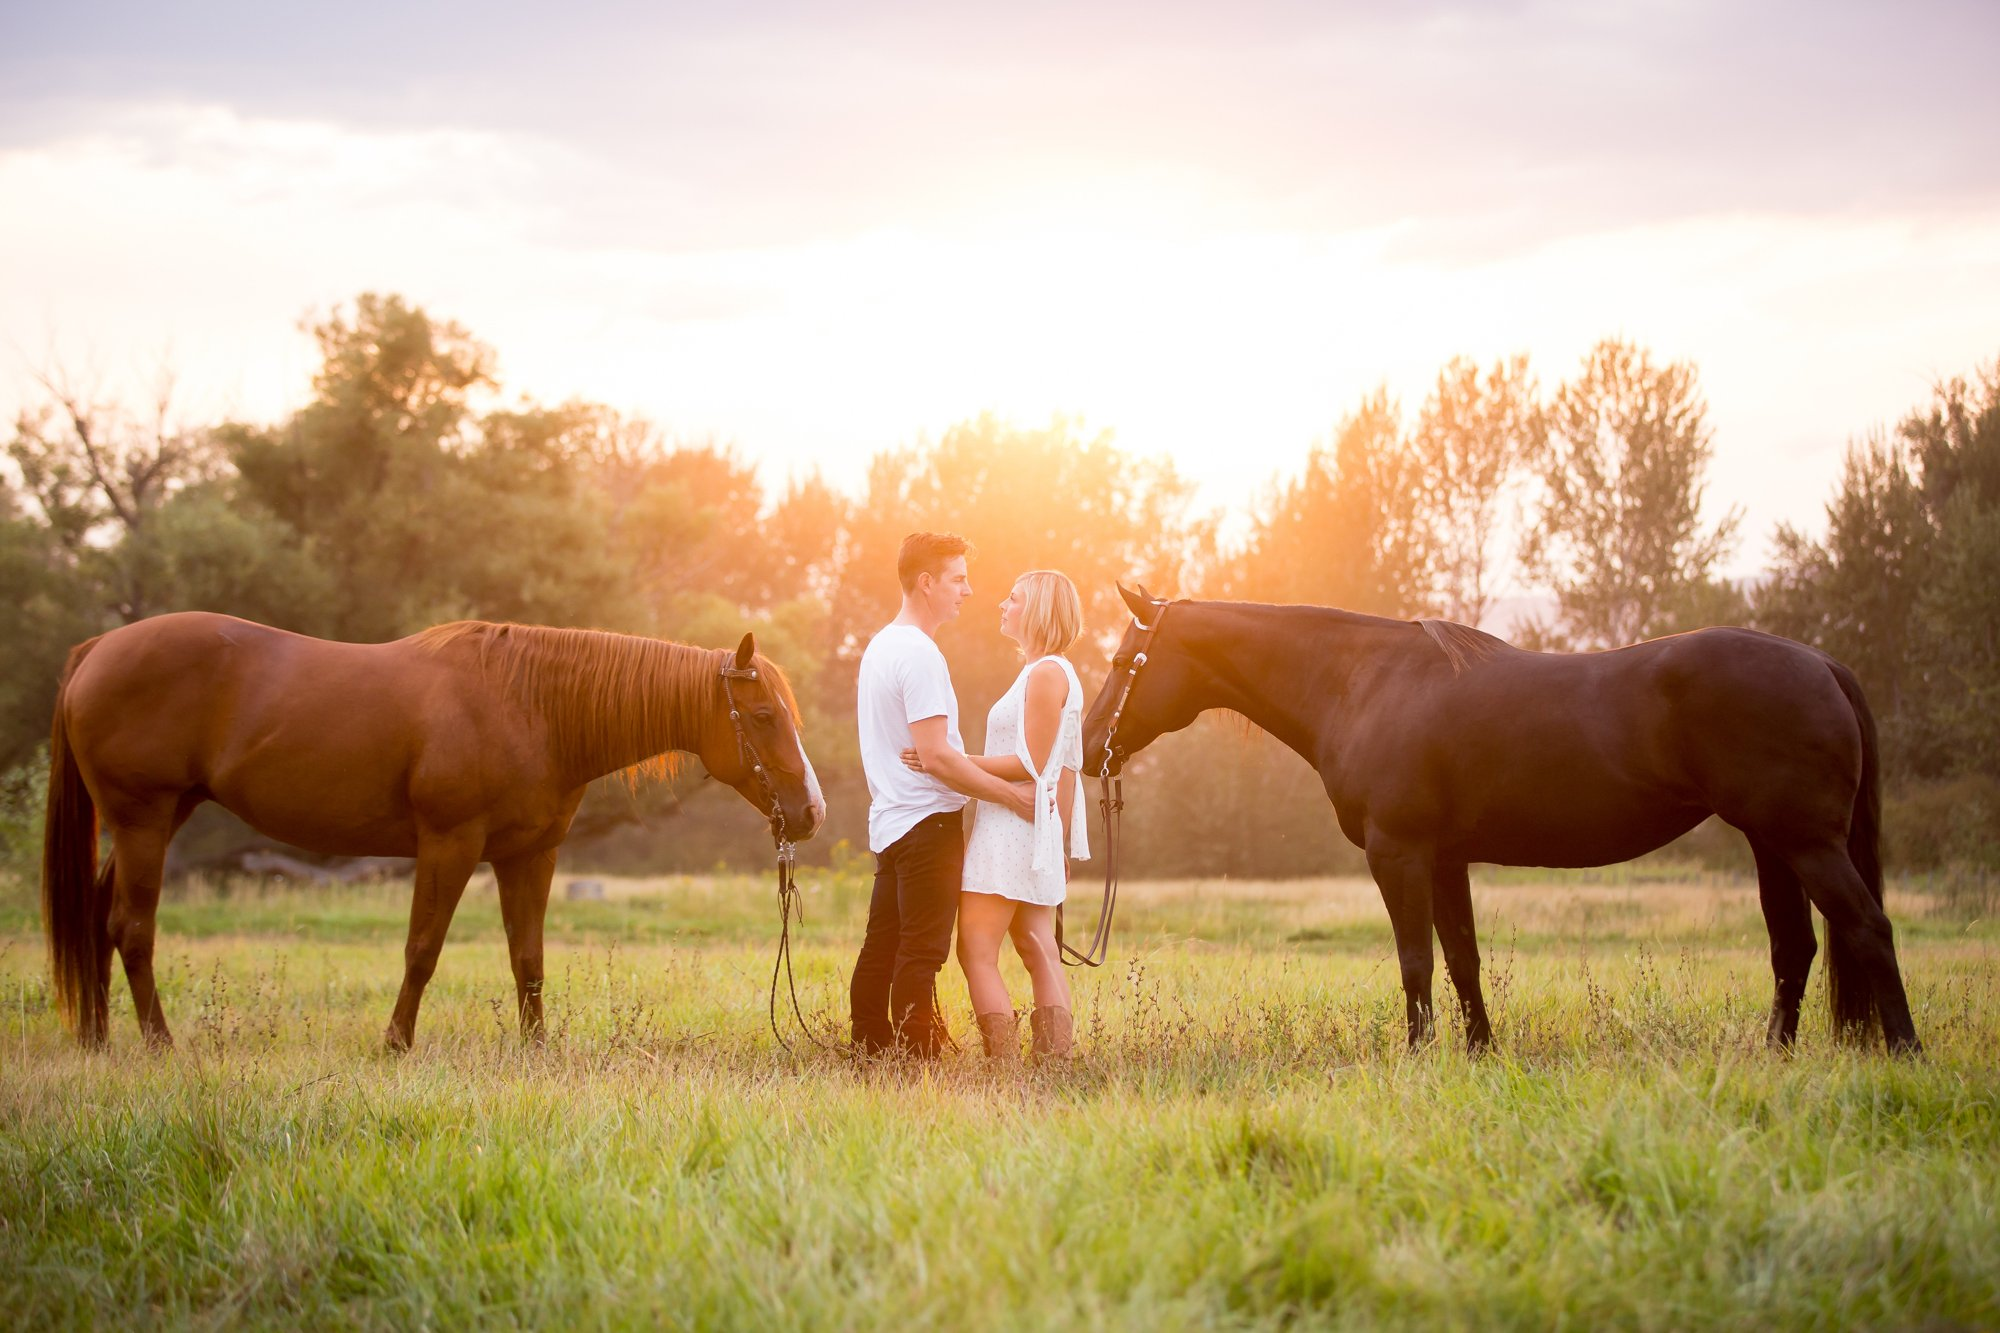 A couple standing together at sunset with their horses